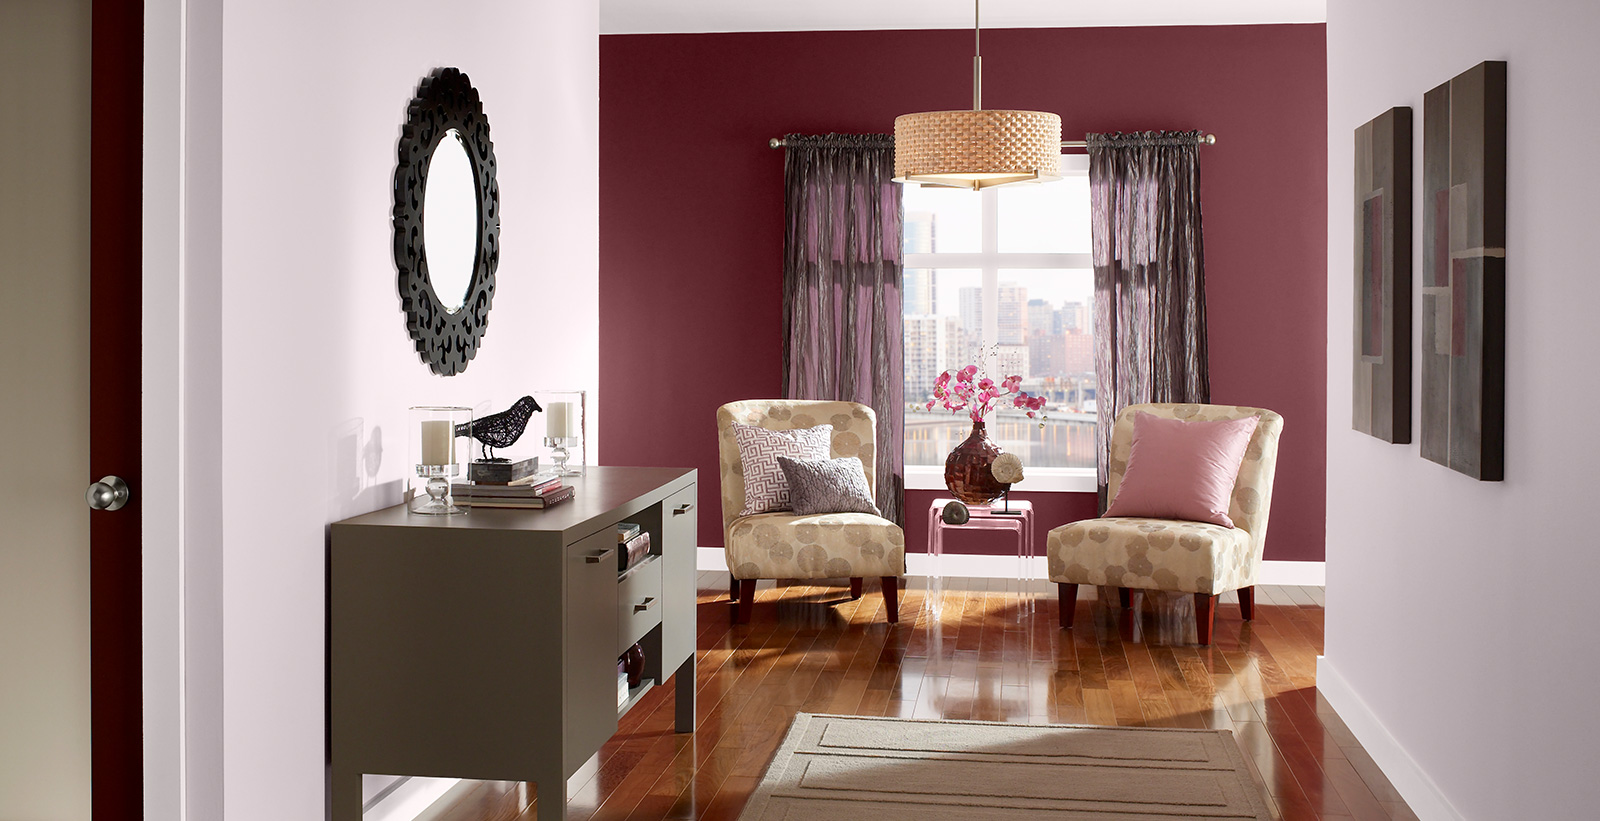 Hallway with light pink walls, dark red accent wall, and white trim.